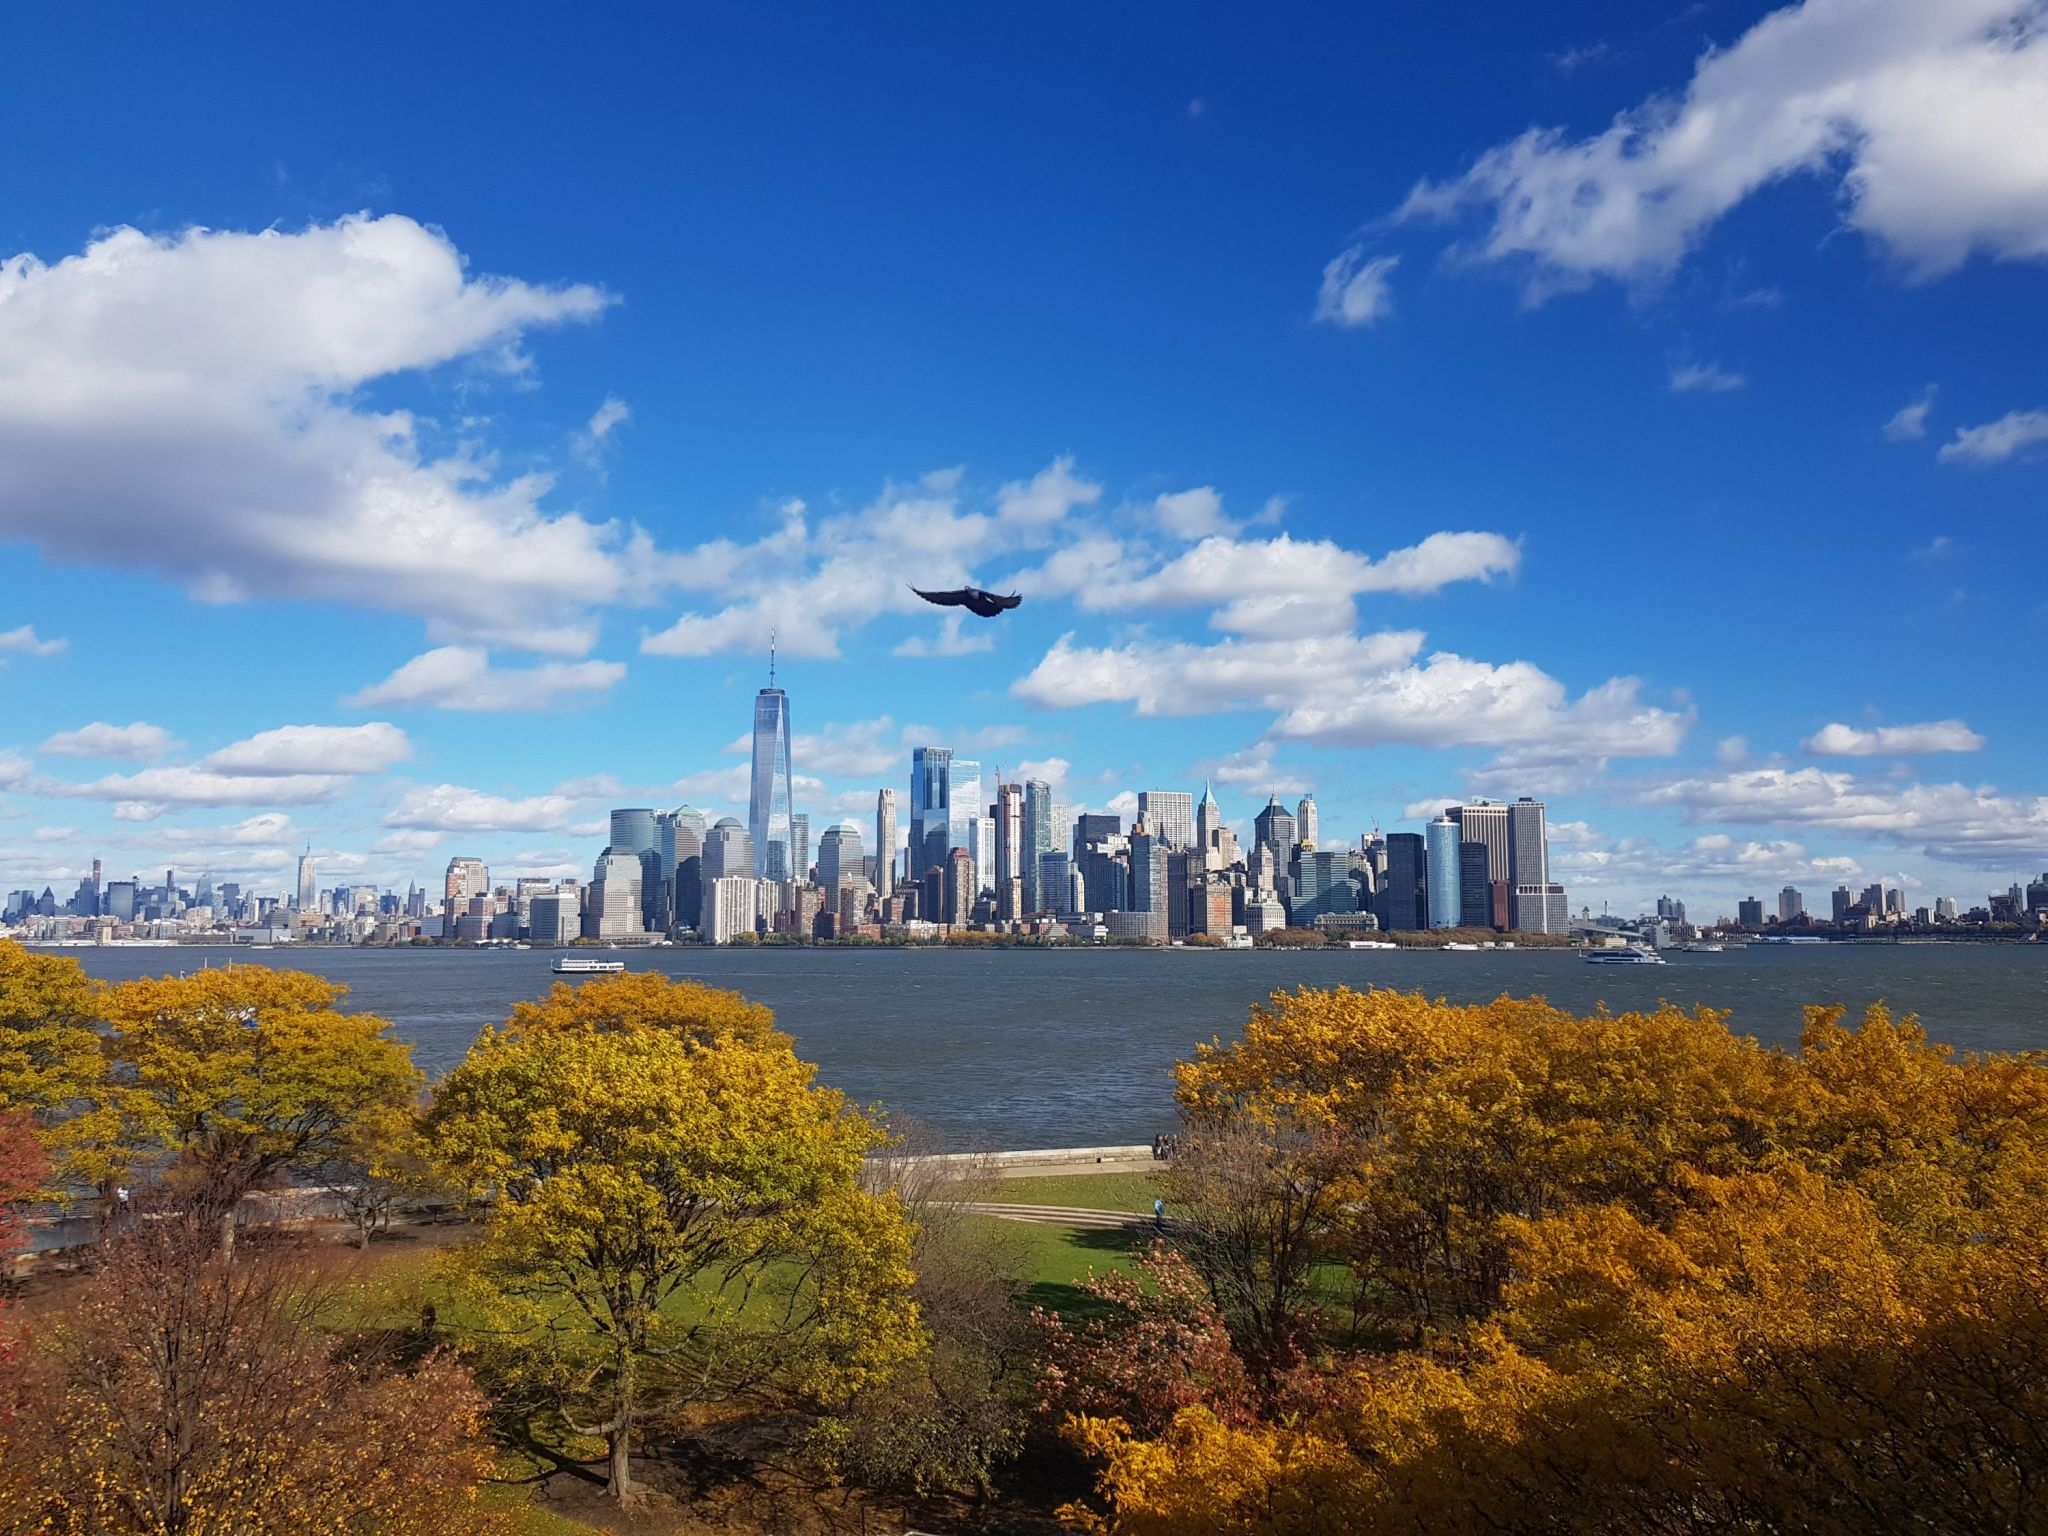 Manhattan skyline, Manhattan, Brooklyn, New Jersey, ellis island, viewpoint